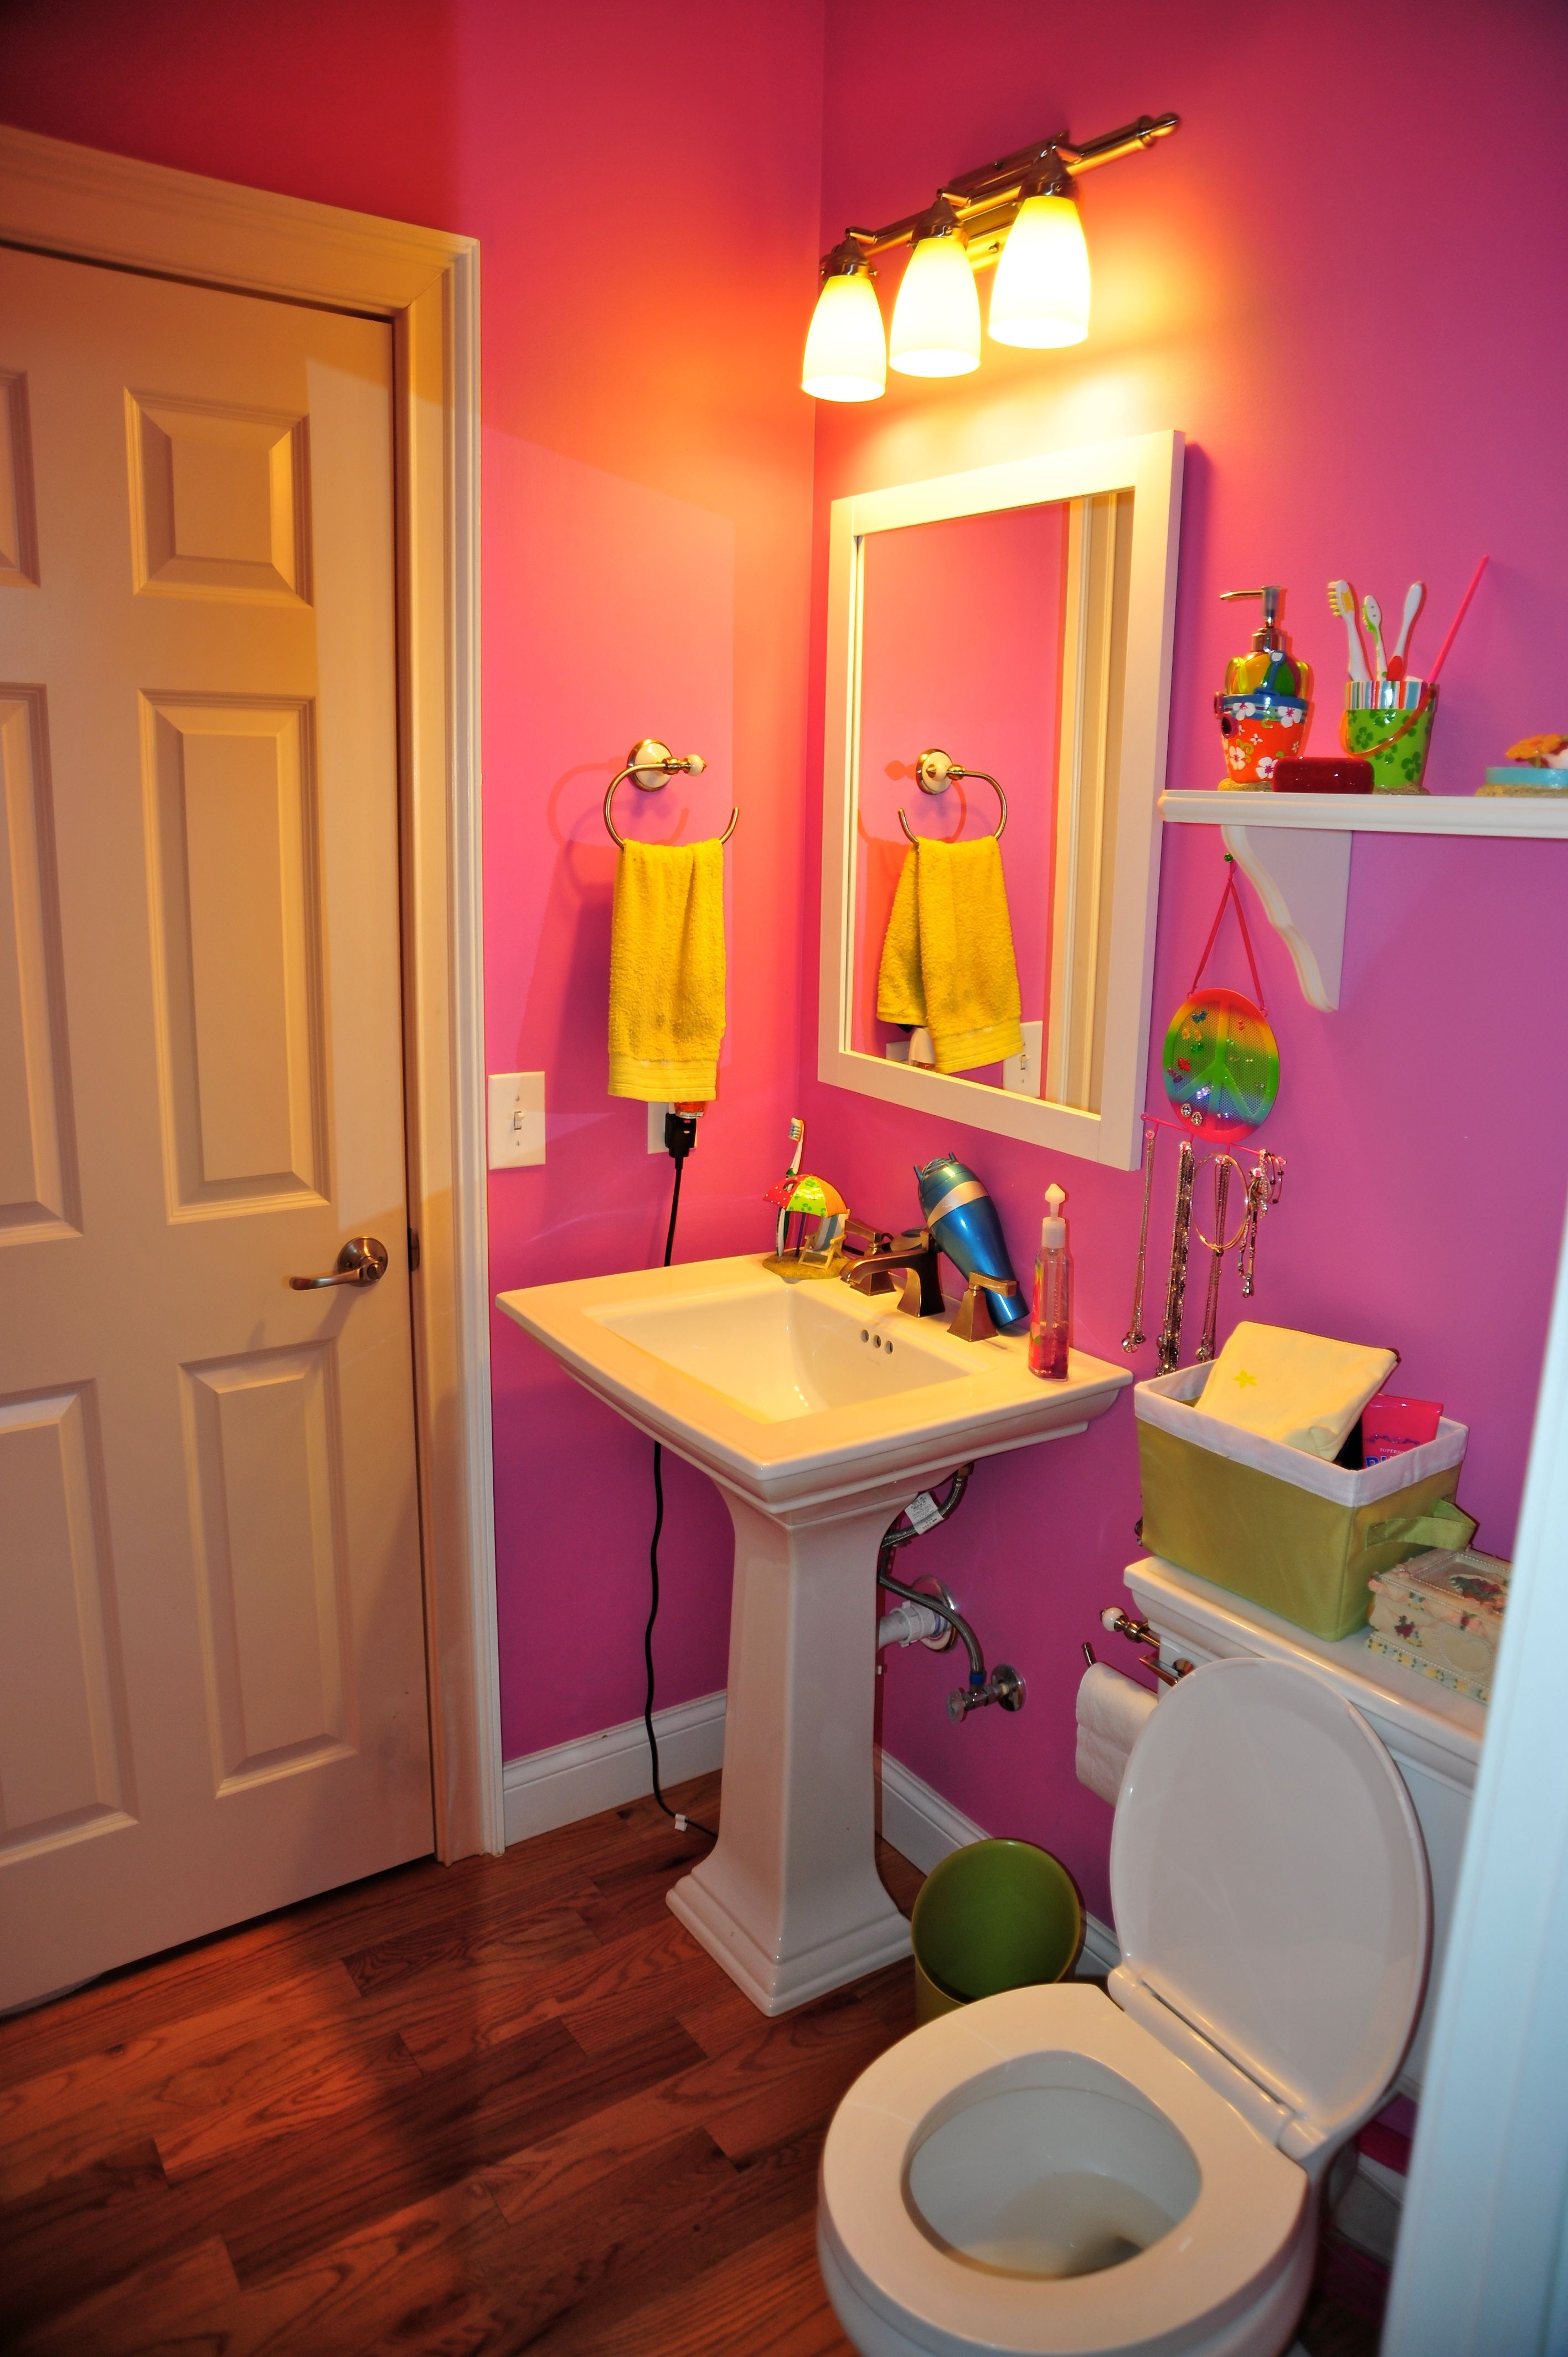 1000 Images About Pink Bathrooms On Pinterest Pink Bathrooms Hot Pink Bathrooms And Powder Rooms